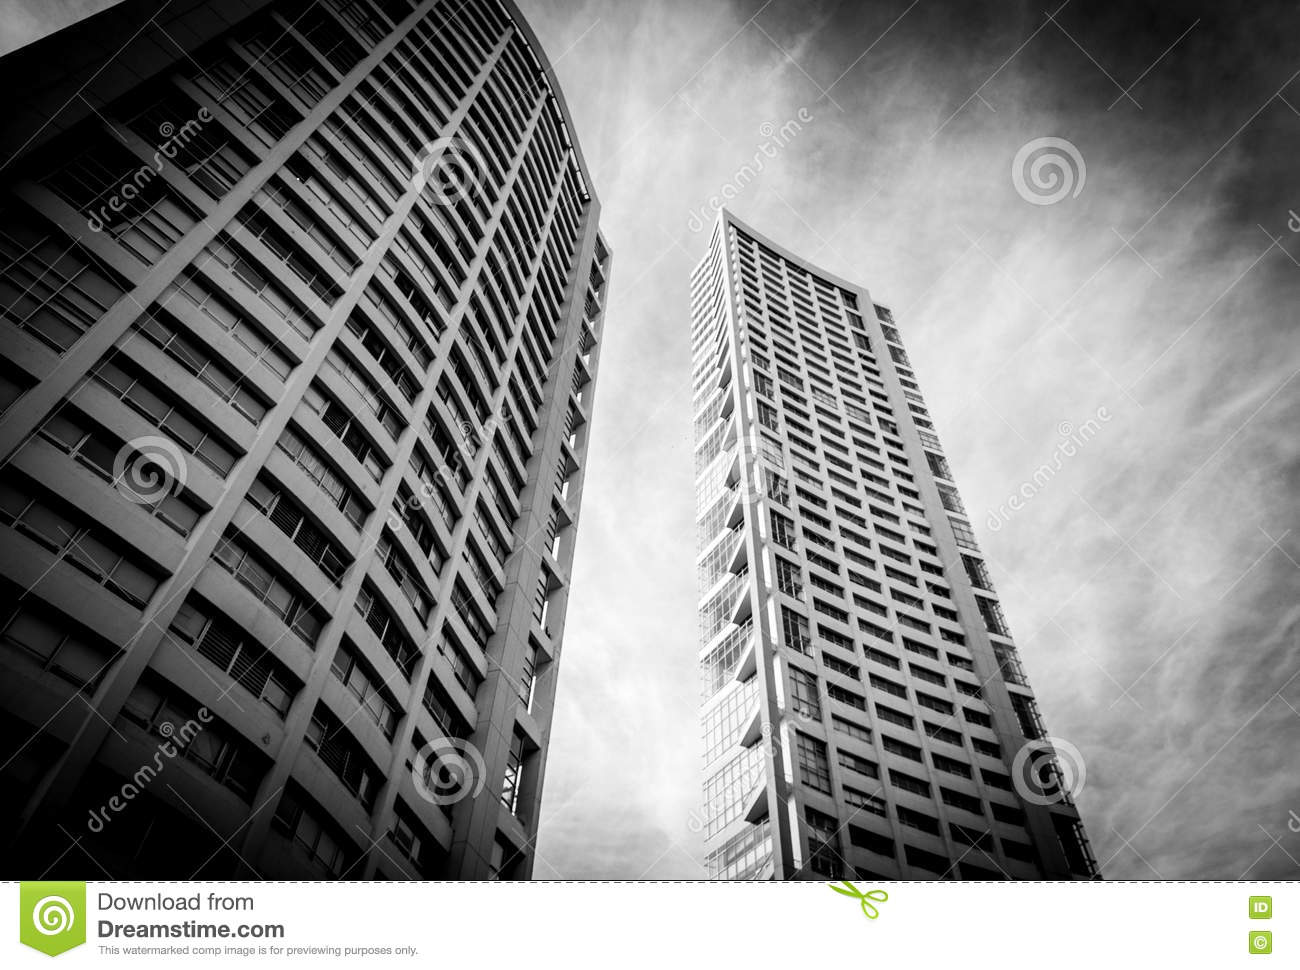 Several tall buildings in guadalajara jalisco mexico city black and white